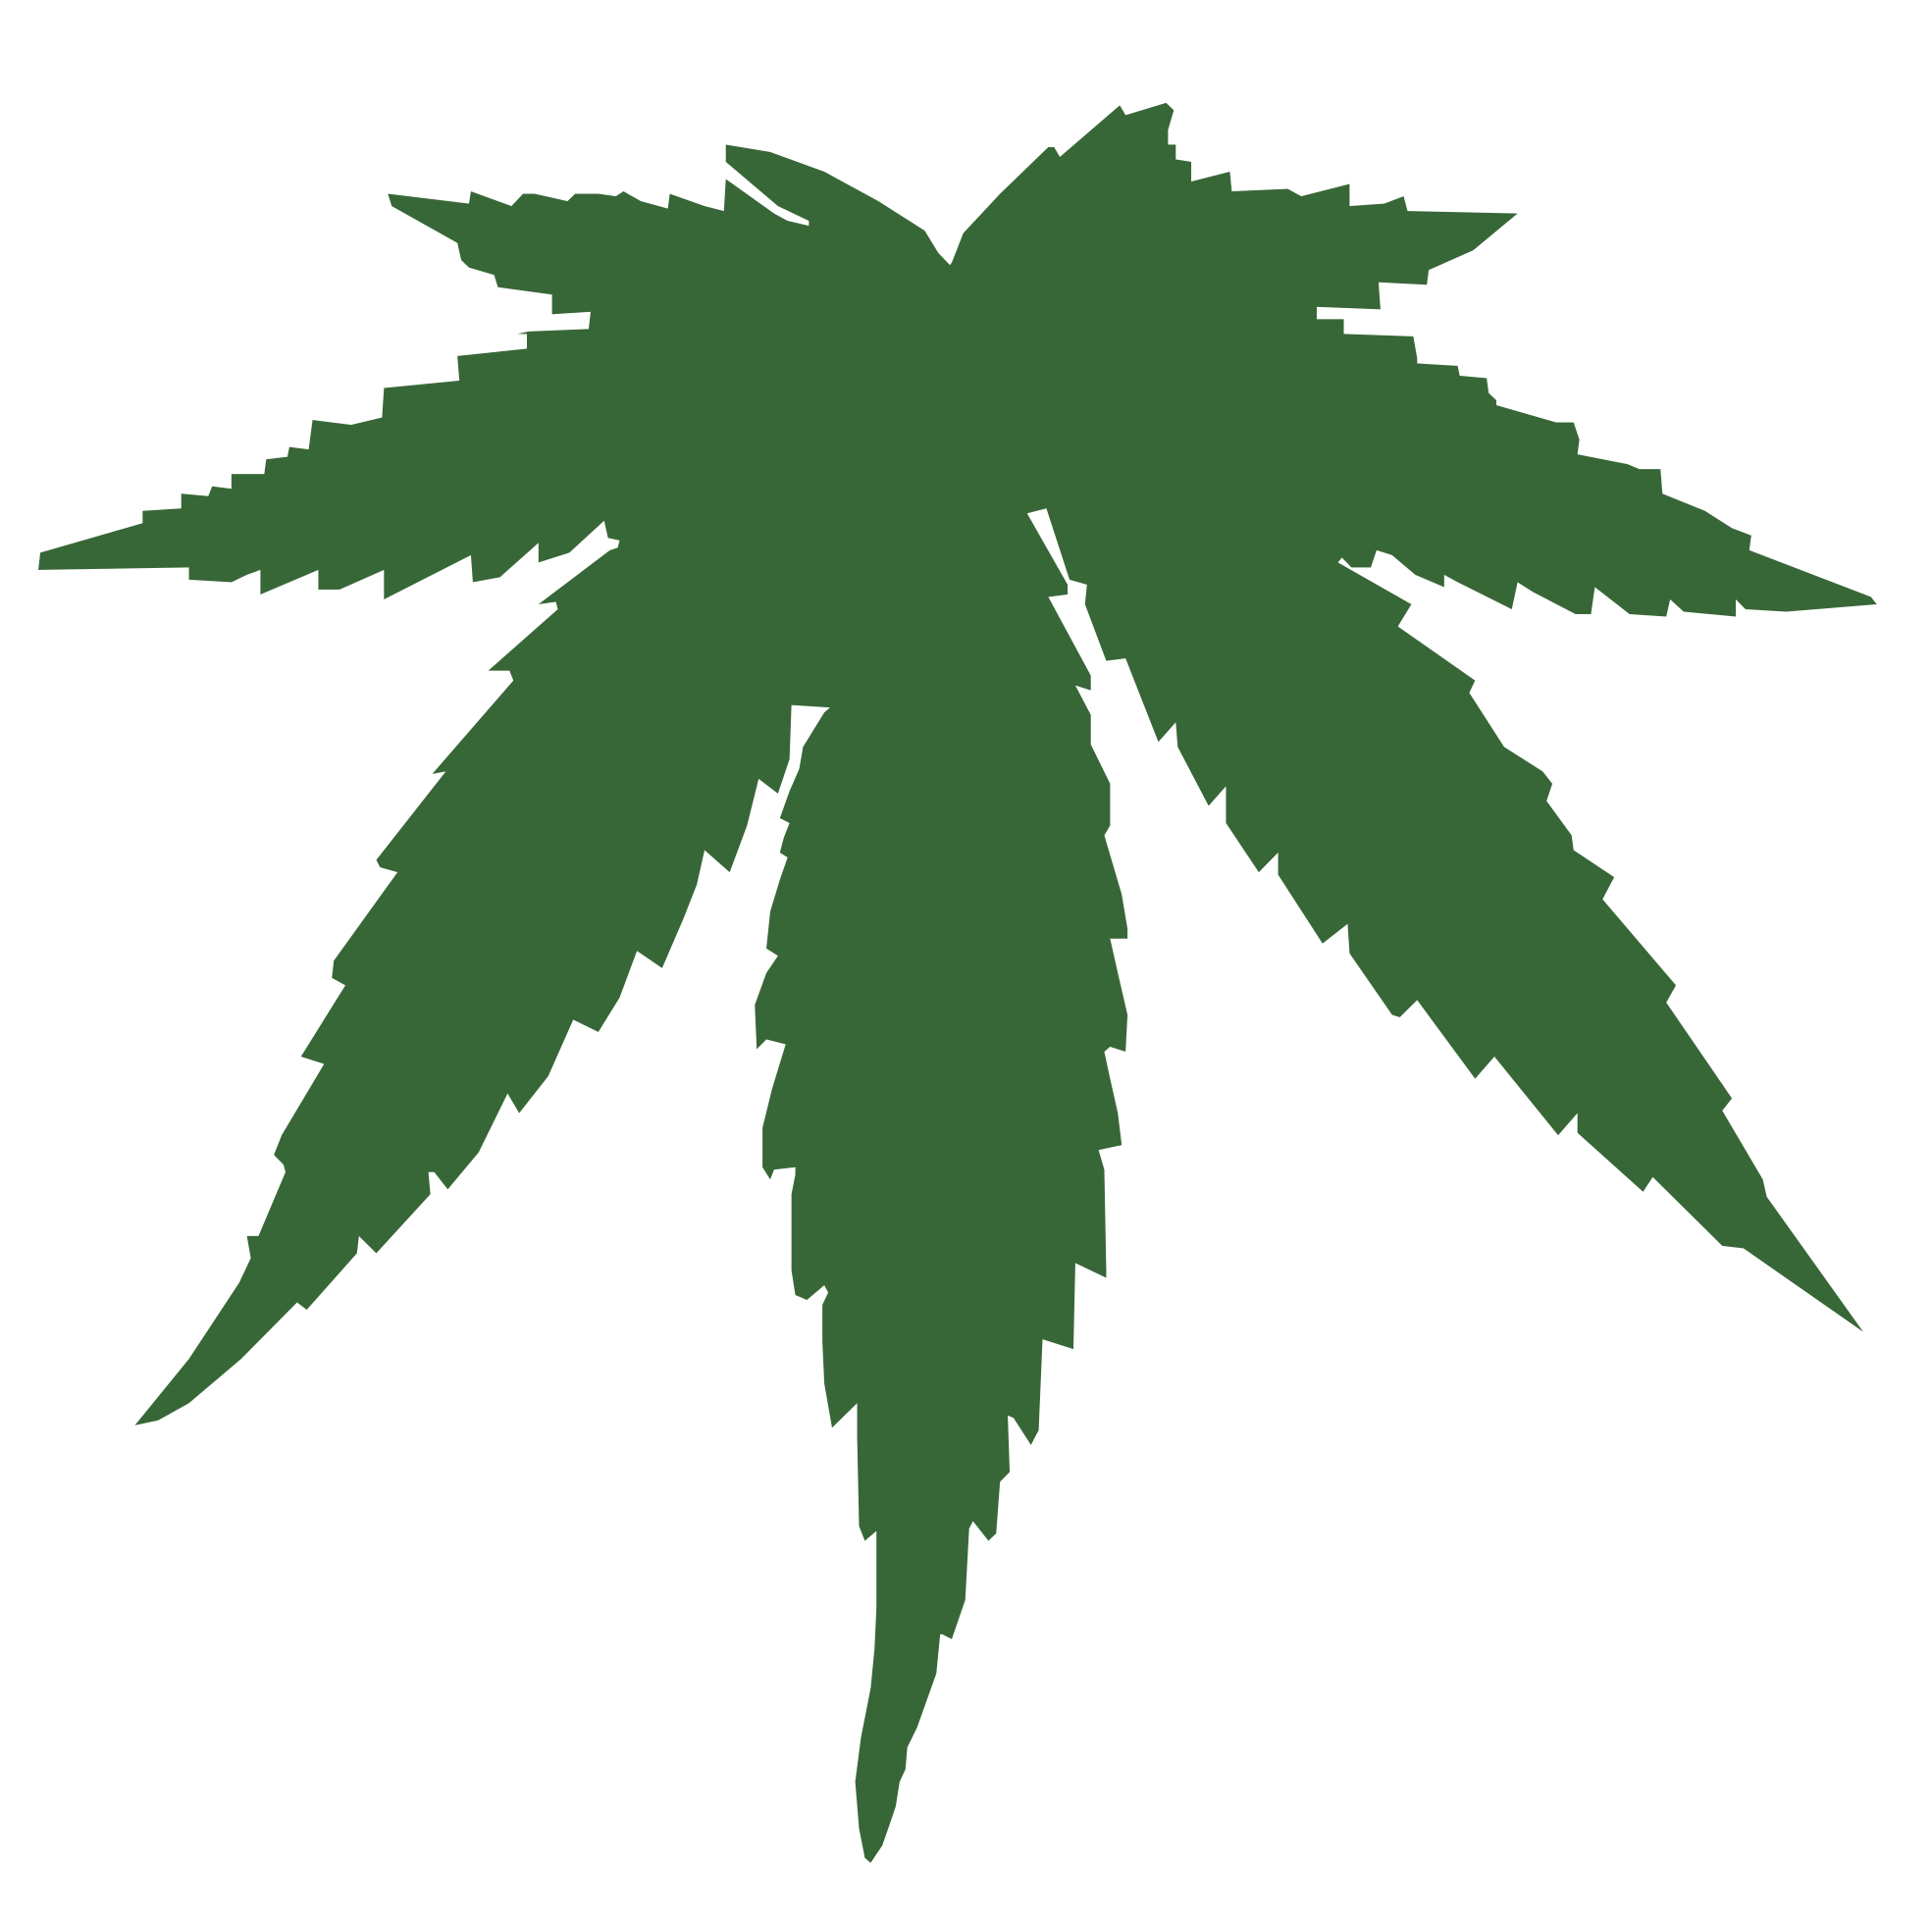 Weed tree clipart svg Weeds clipart plant for free download and use images in ... svg